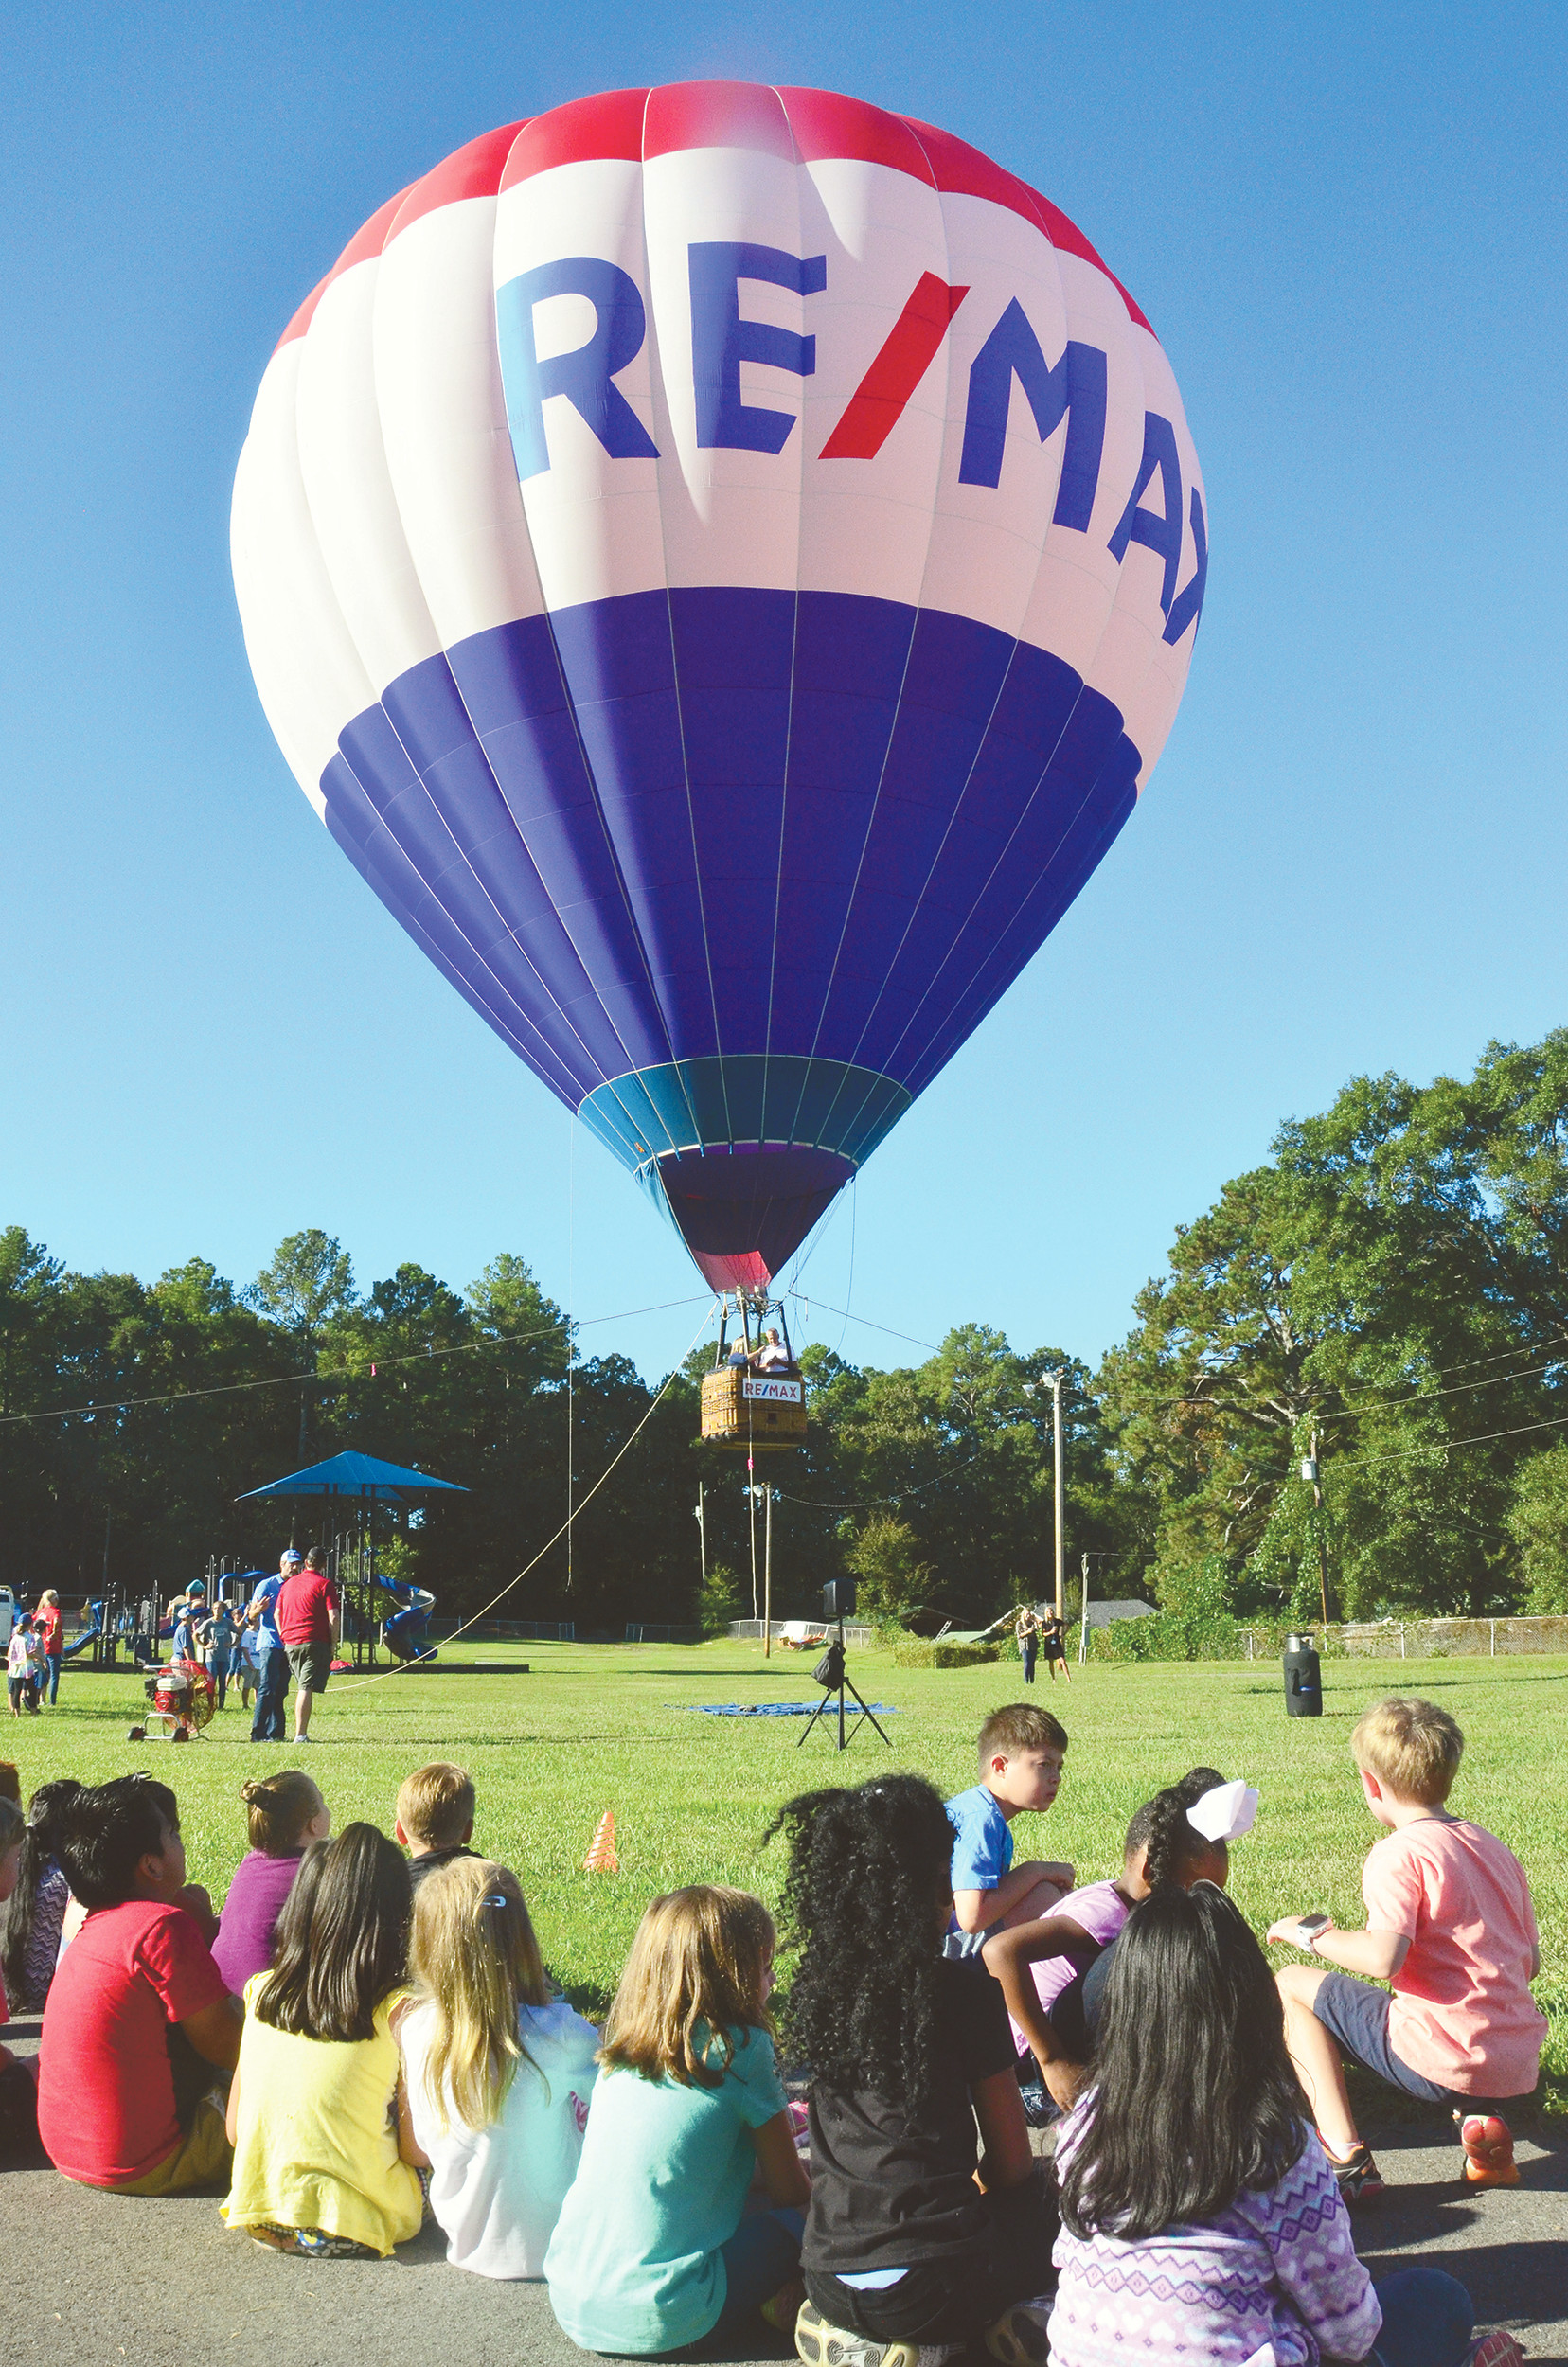 A hot air balloon sponsored by Re/Max surprised students at T.R. Simmons Elementary in Jasper by its appearance Monday morning. Several teachers as well as Principal Meagan Fields went about 30 feet